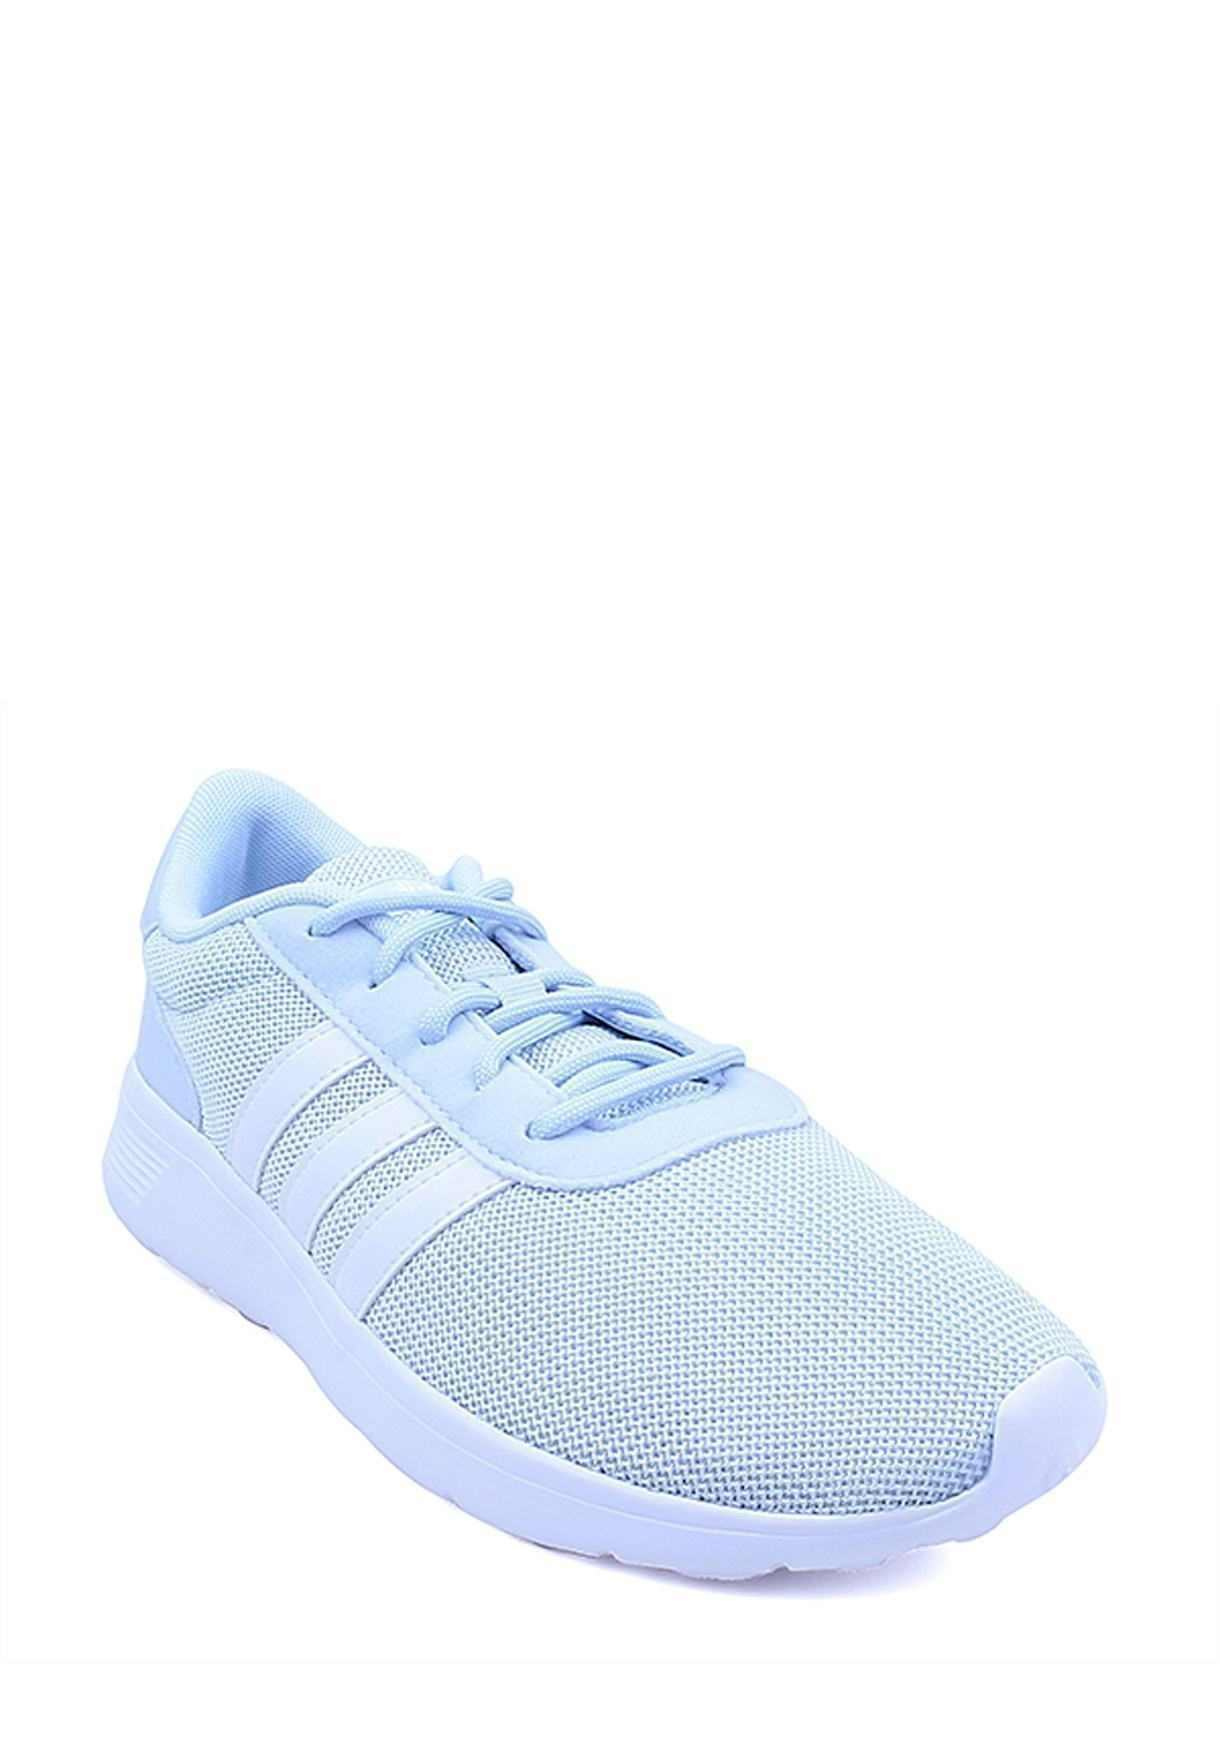 Lite Racer Women's Running Shoes